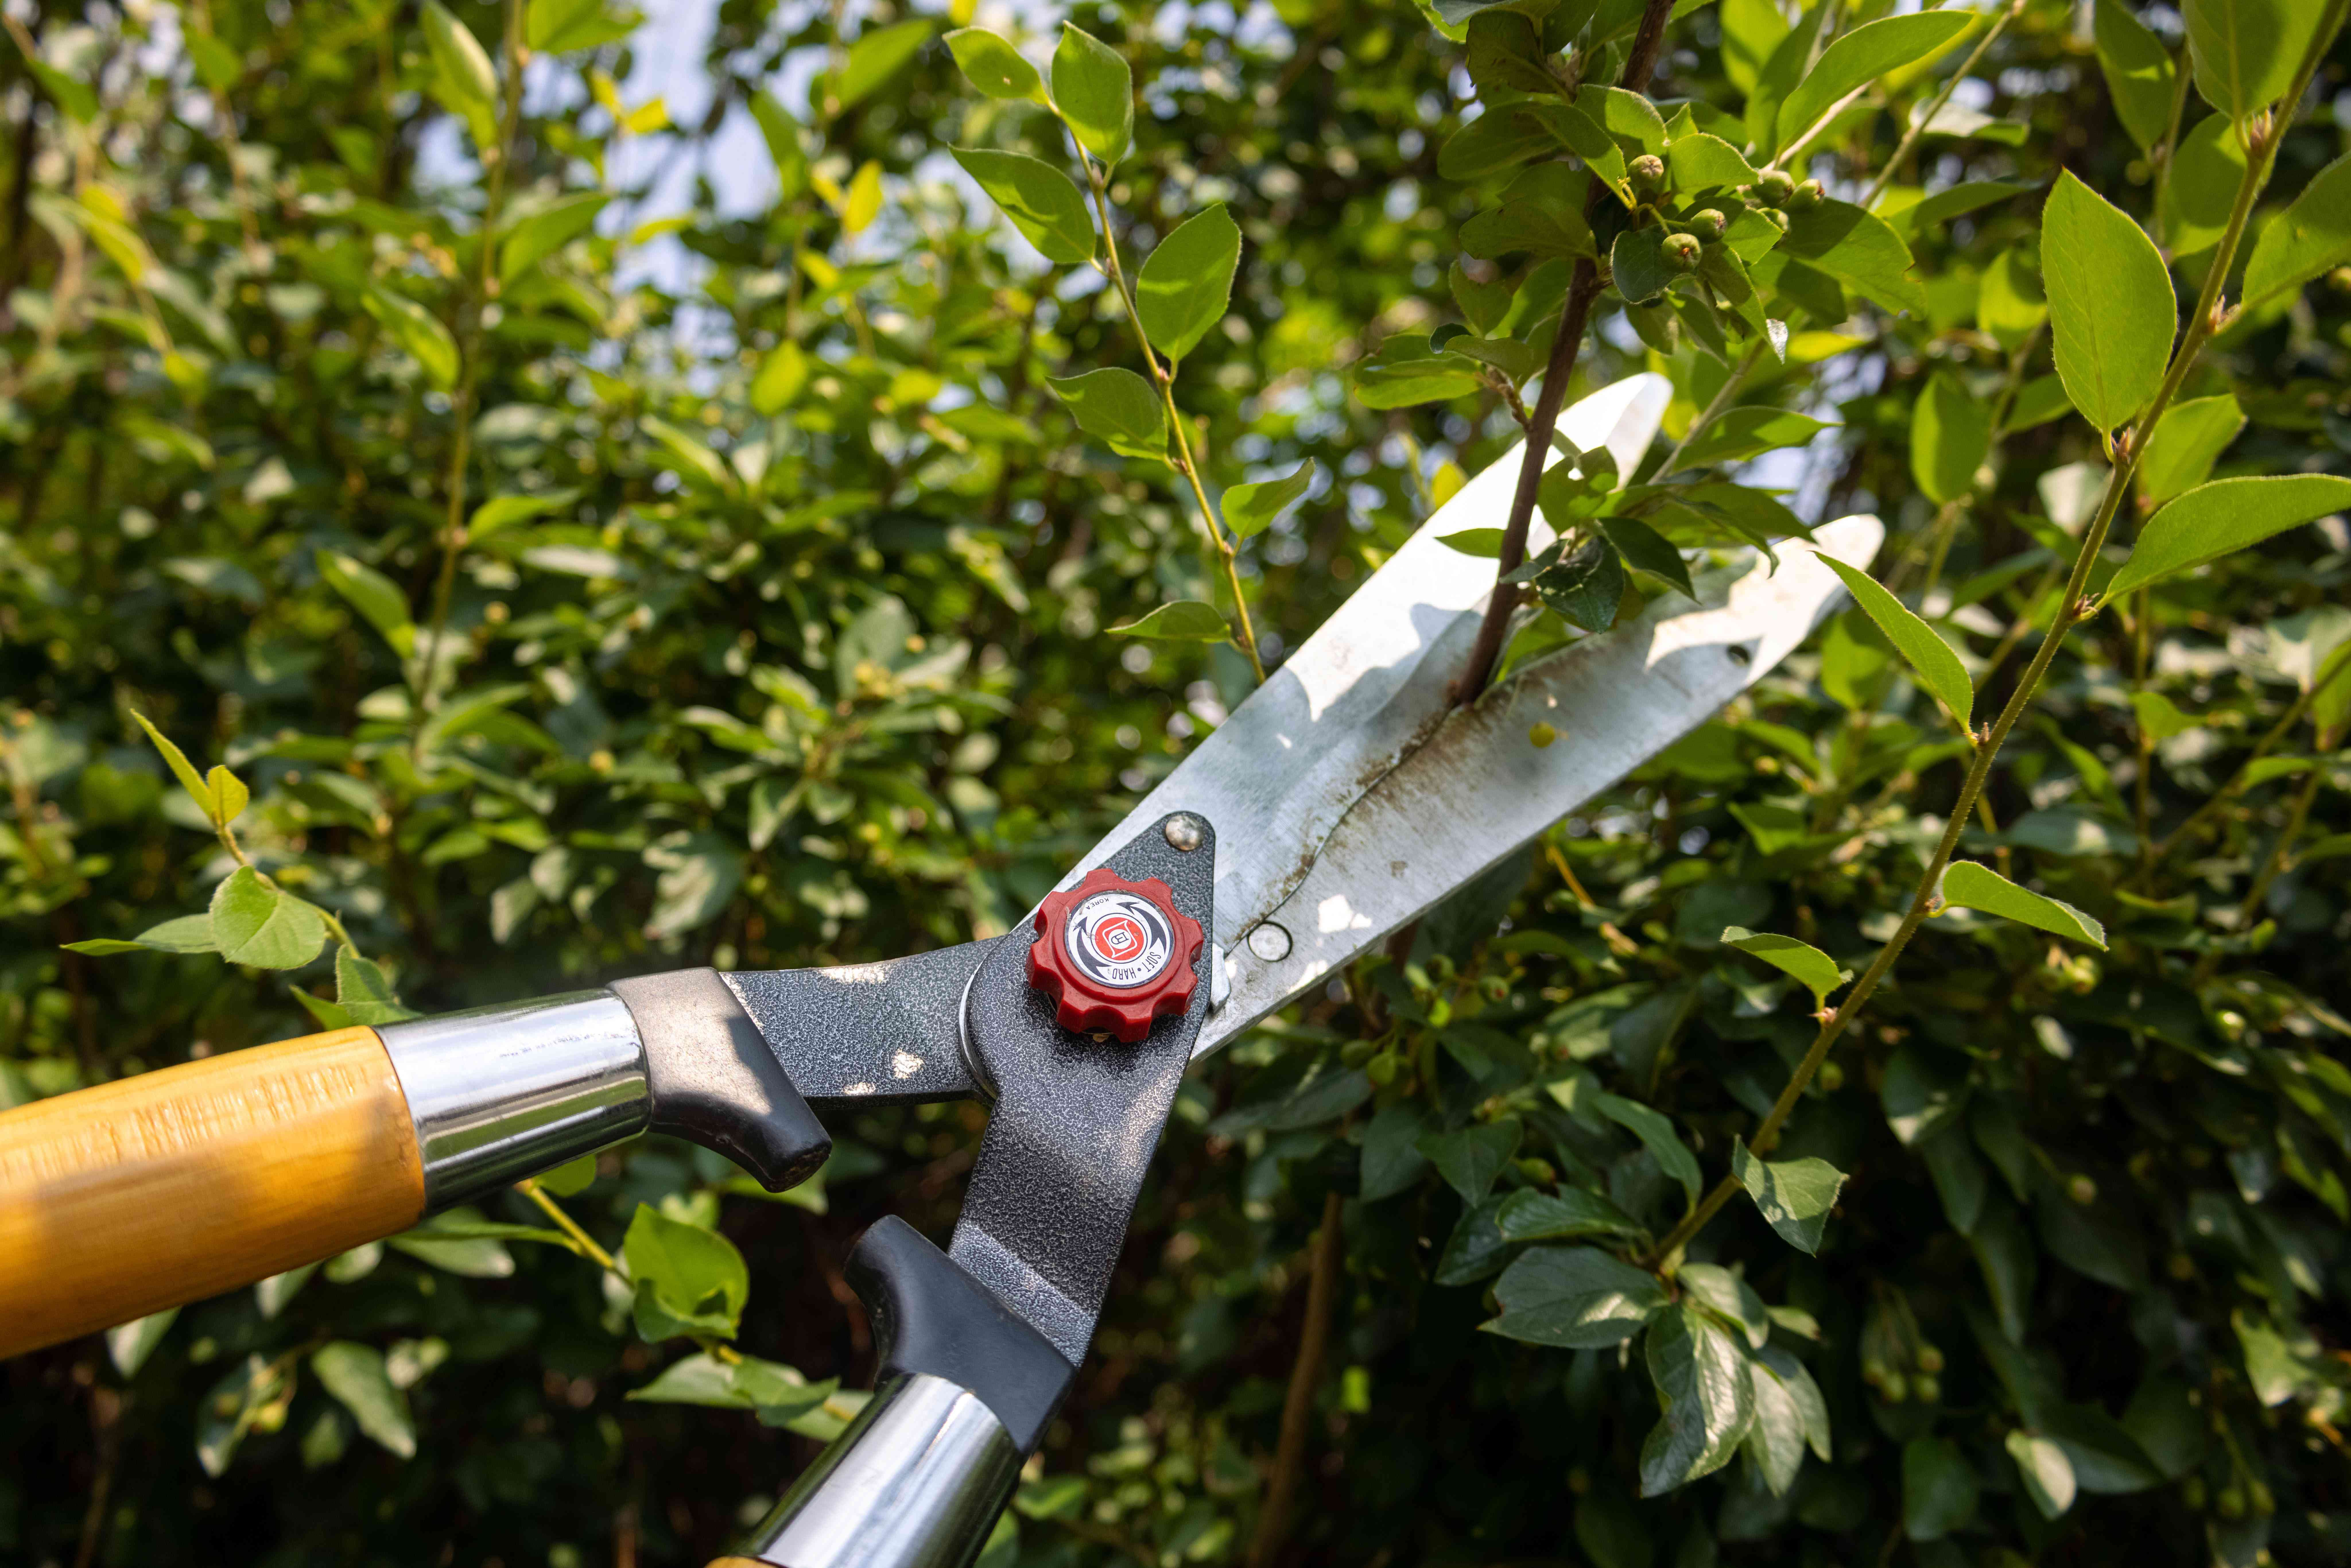 large garden clippers are used to trim outside bushes